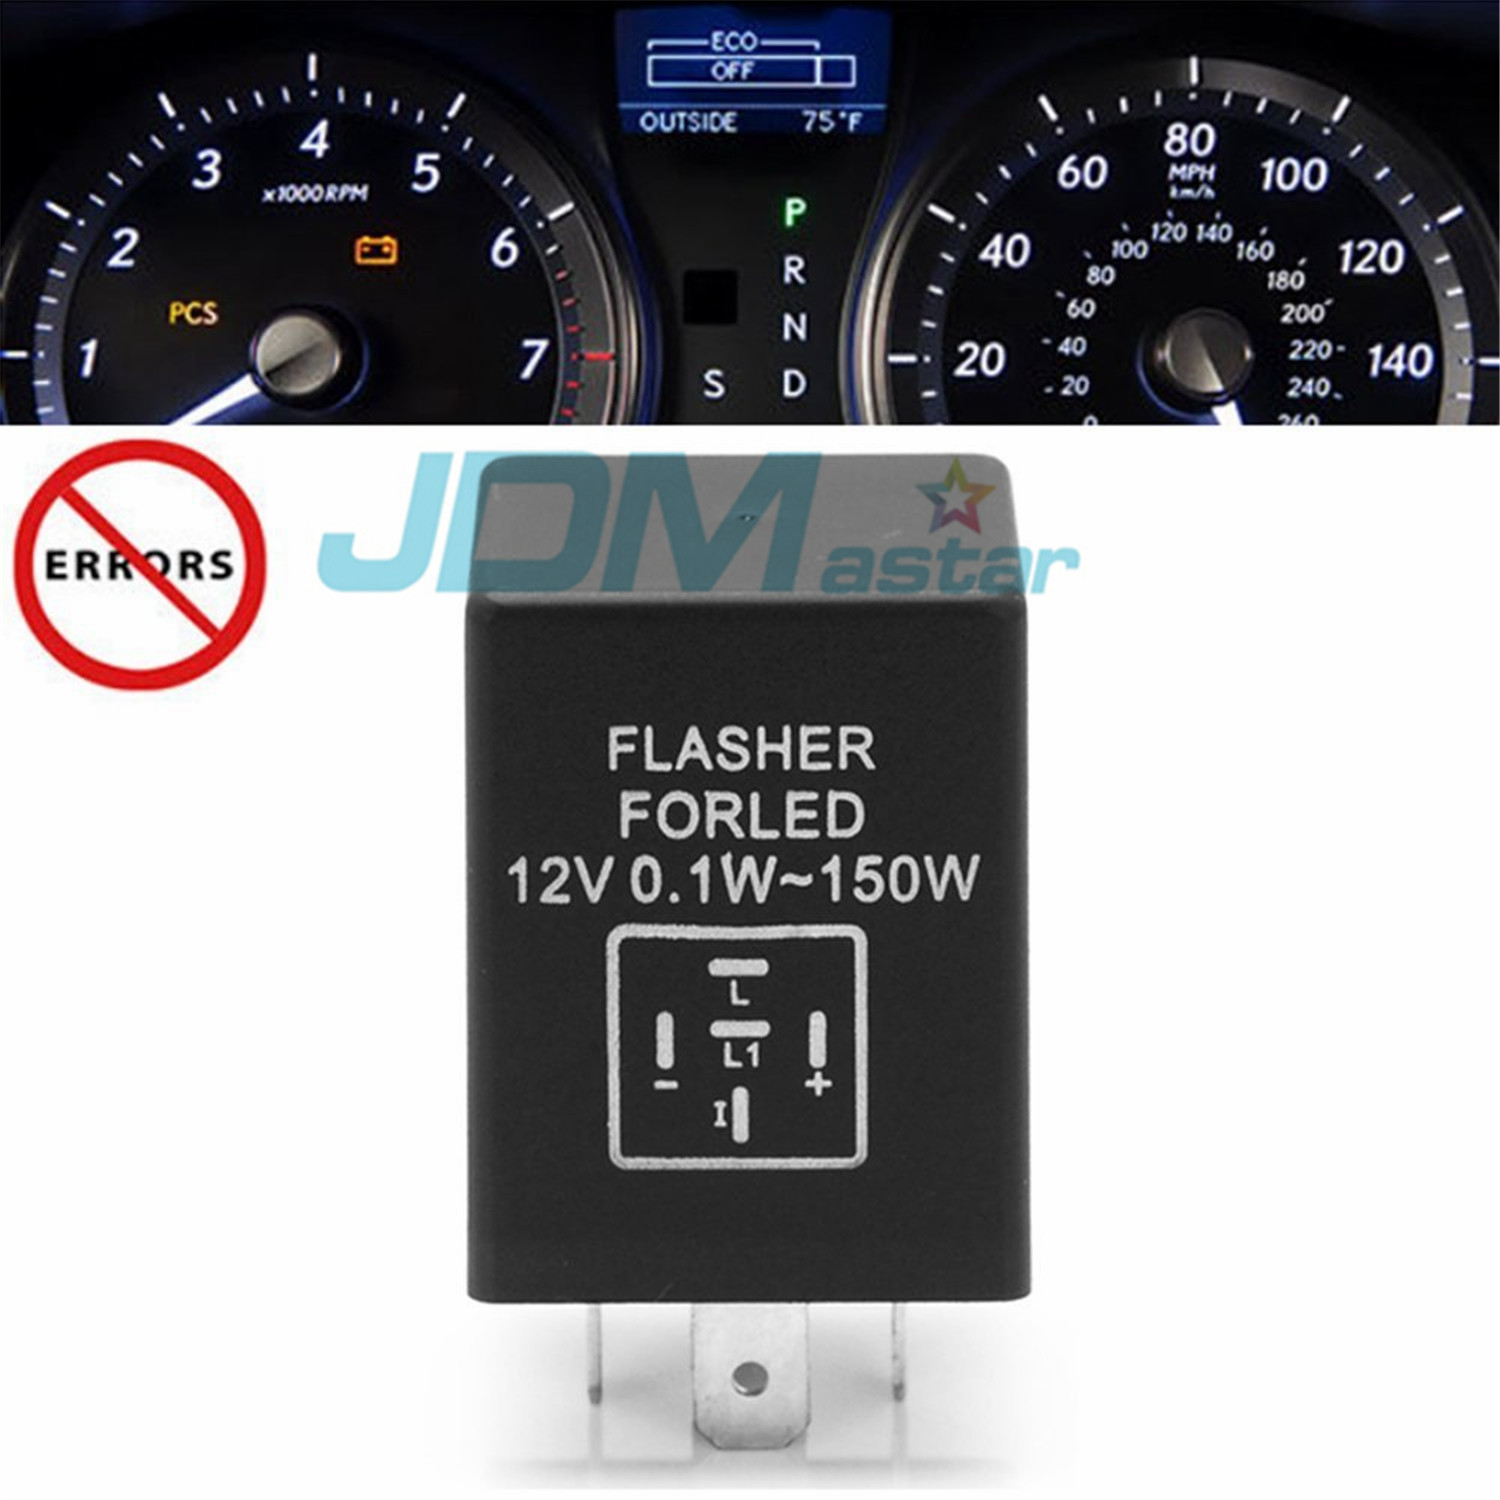 JDM ASTAR EP LED Flasher Relay Fix Hyper Flash Car Turn Signal - Relay vehicle selection